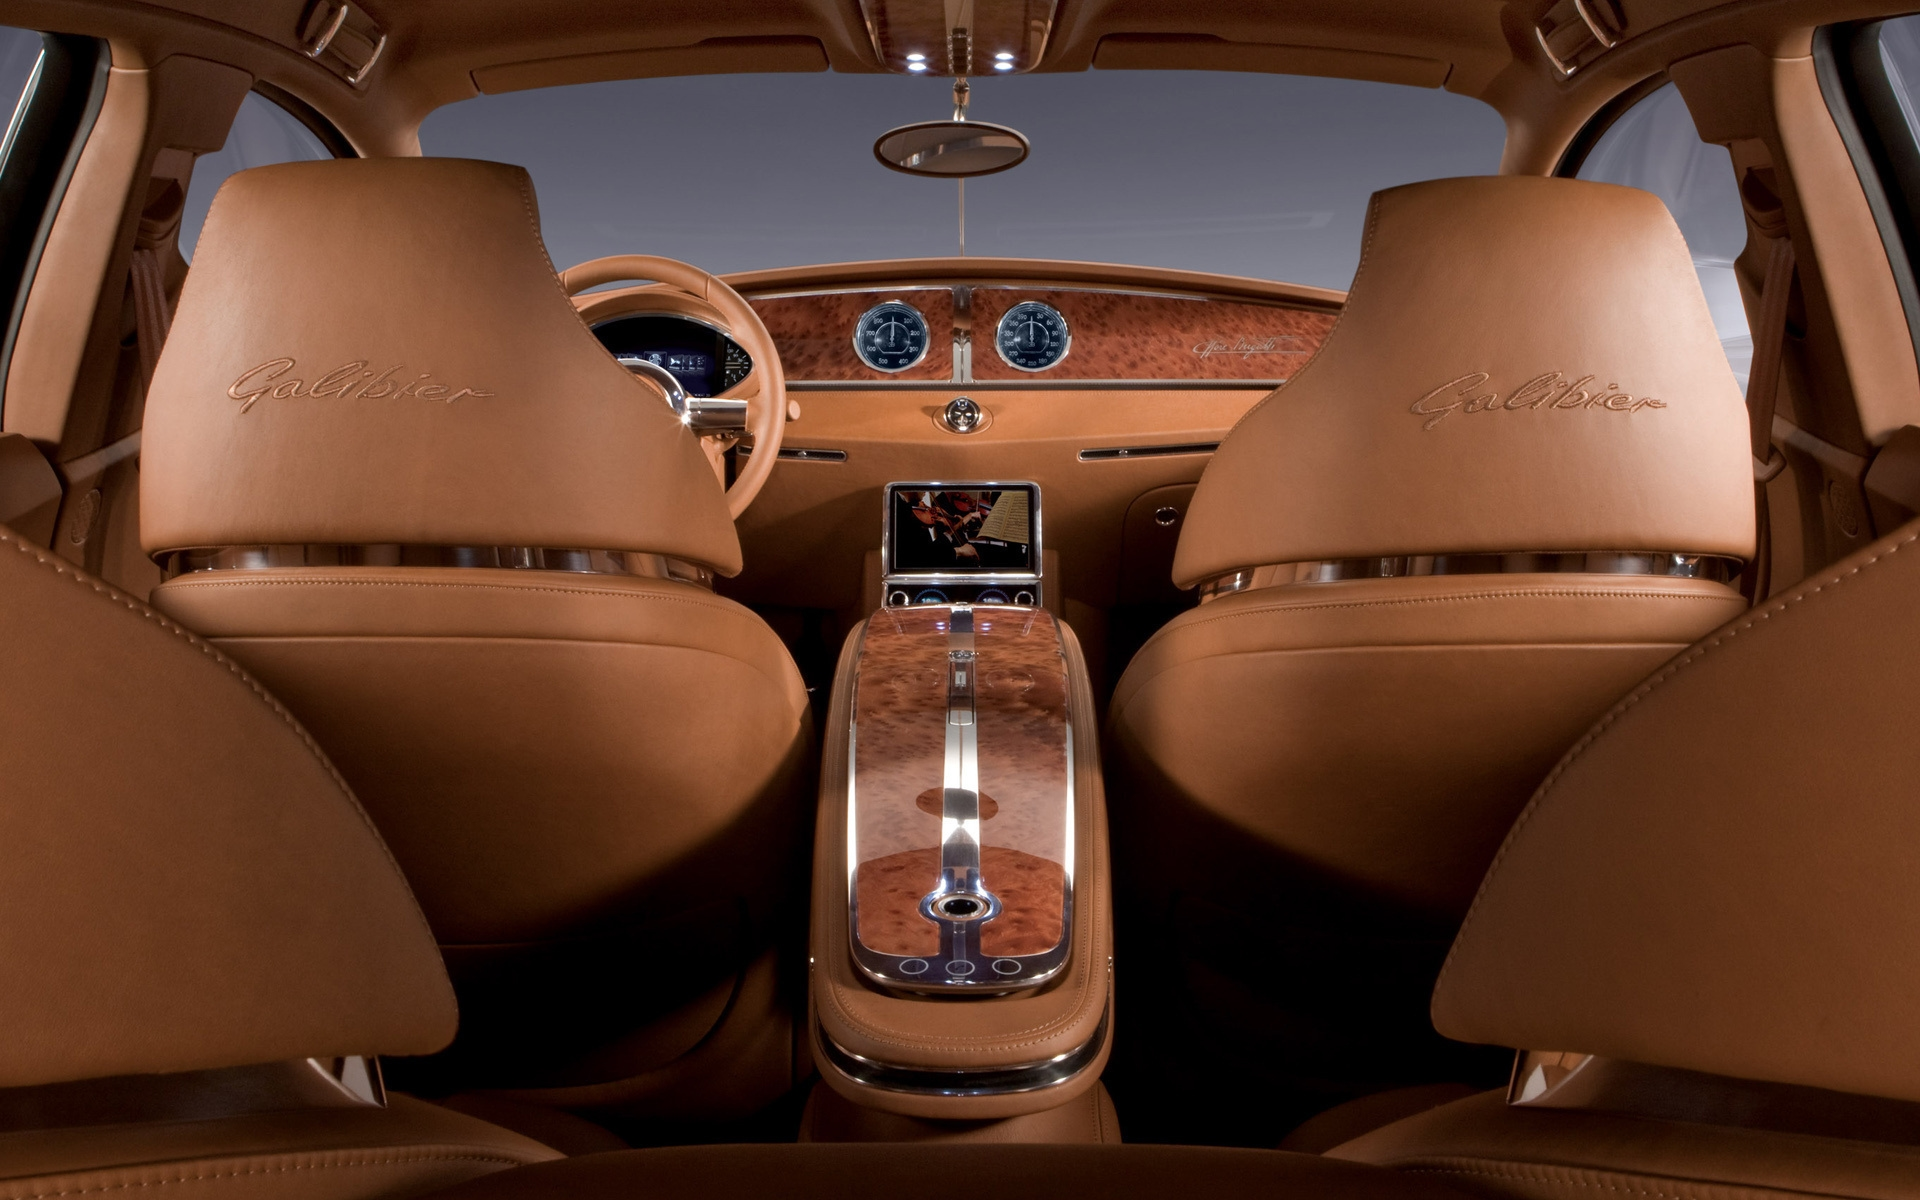 interieur-luxe_fonds-ecran-automobile_14